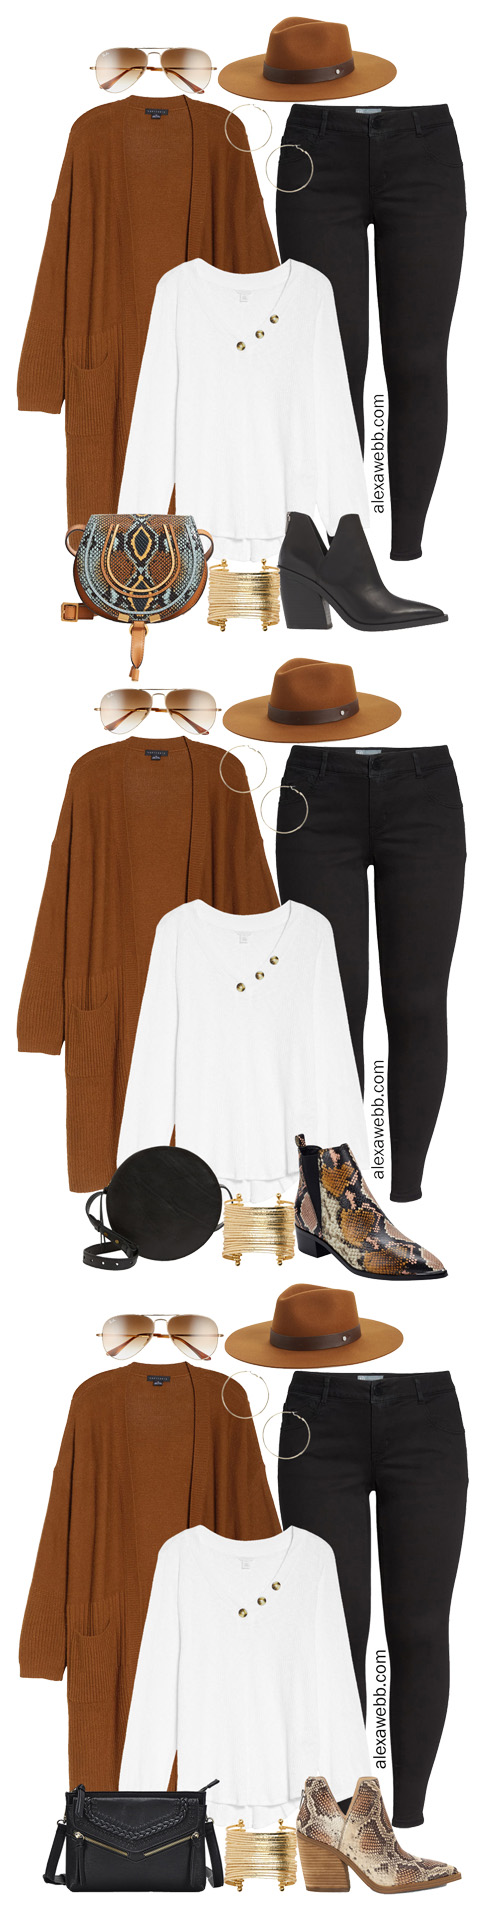 Plus Size Long Cardigan Casual Outfit Ideas with Black Jeans, White Henley, Ankle Booties, and Crossbody Bag - Alexa Webb